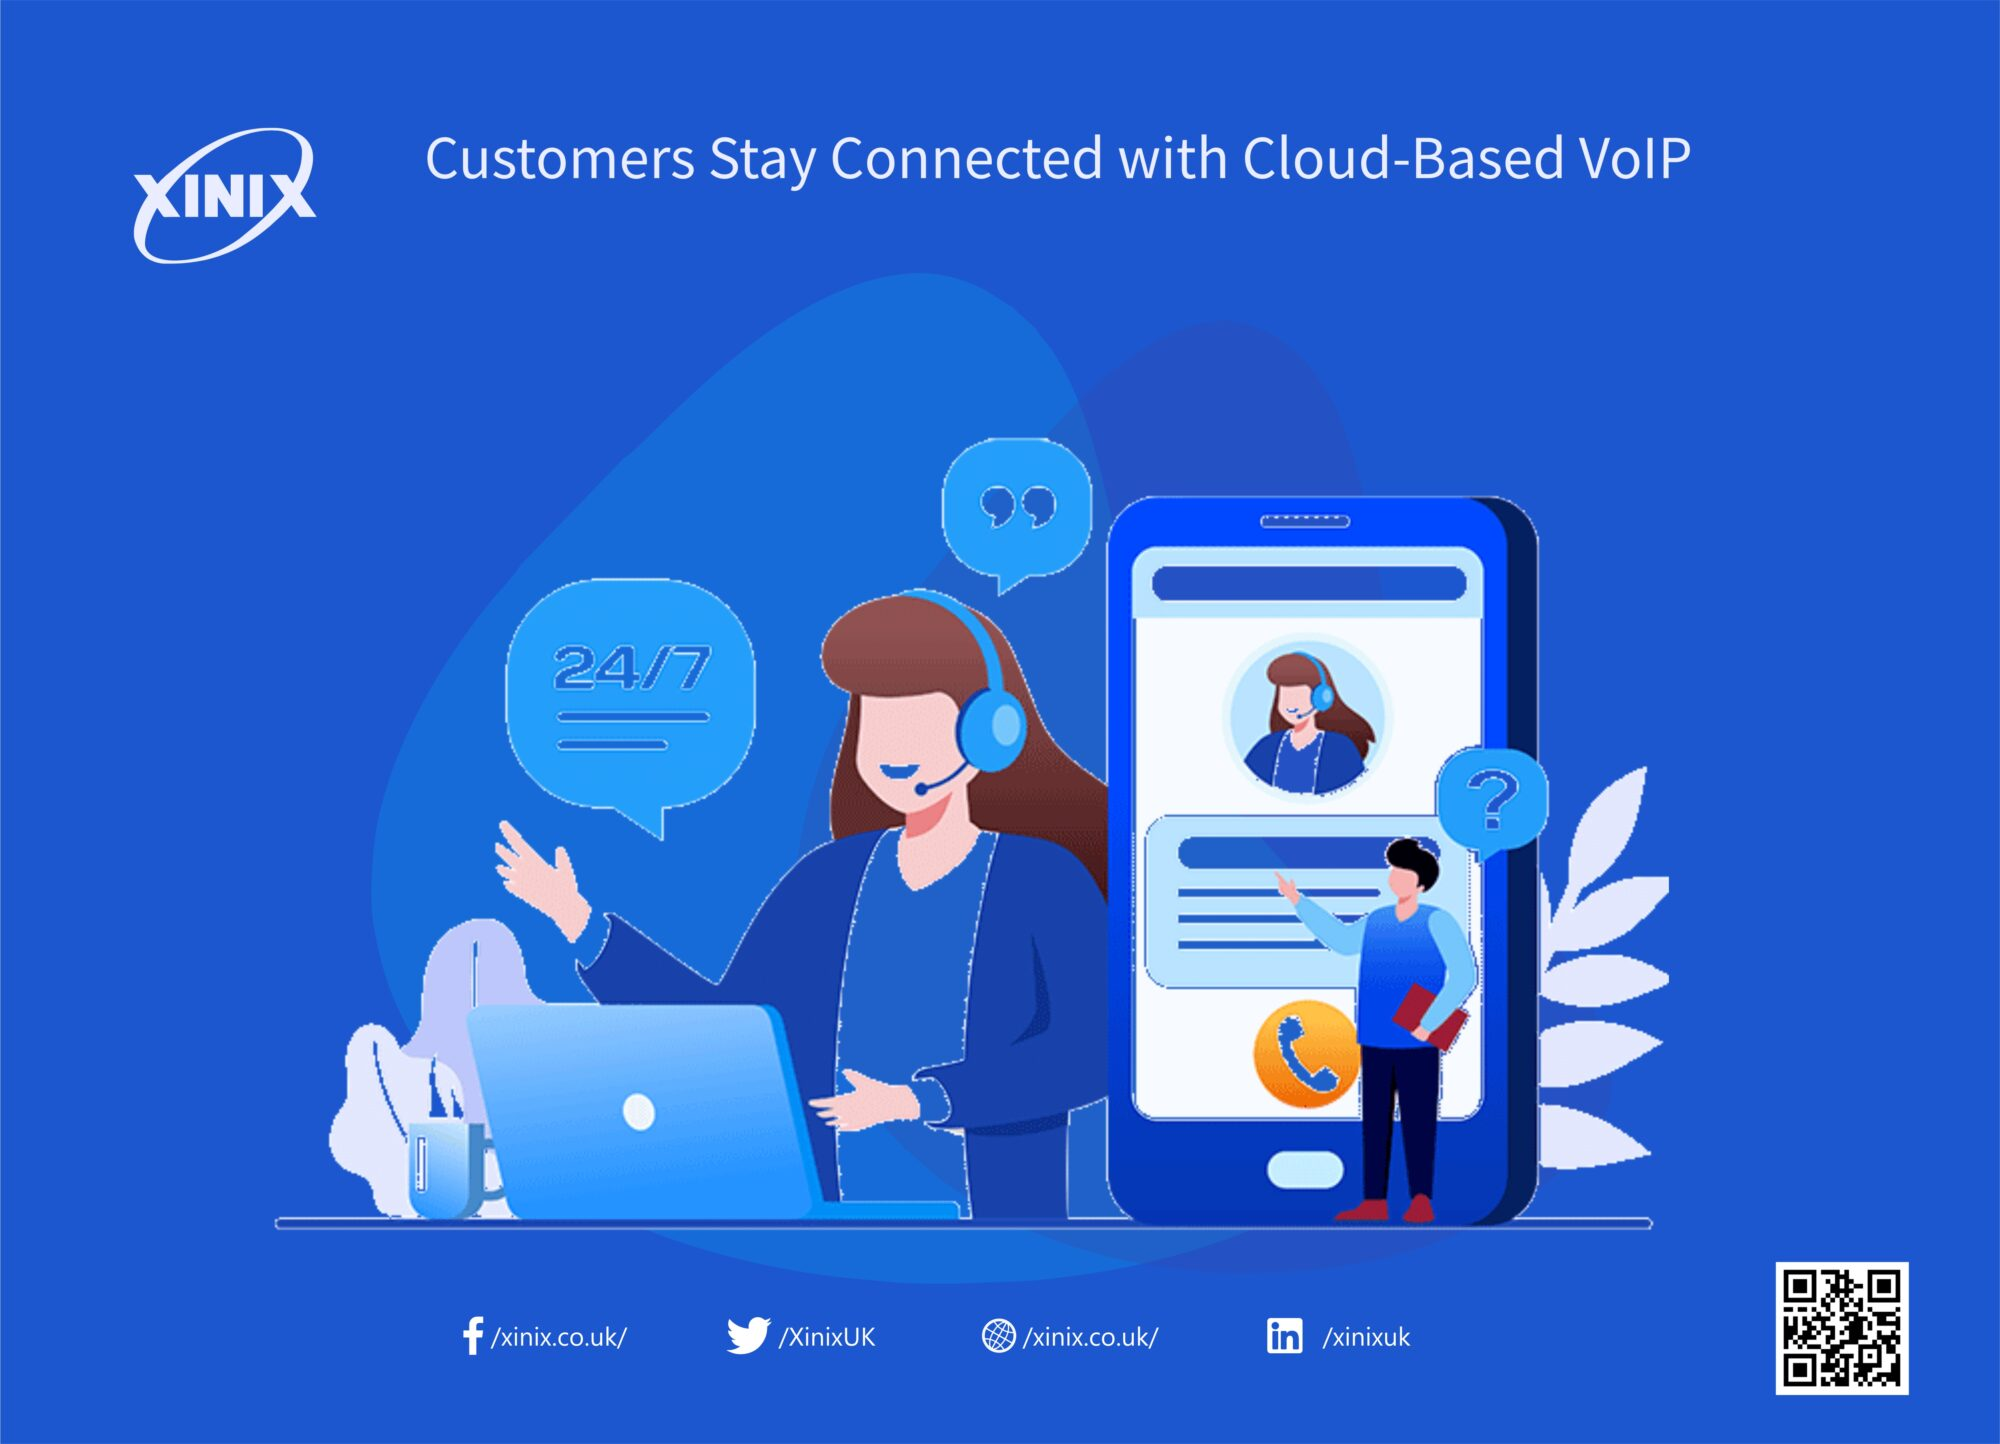 Customers Stay Connected with Cloud-Based VoIP